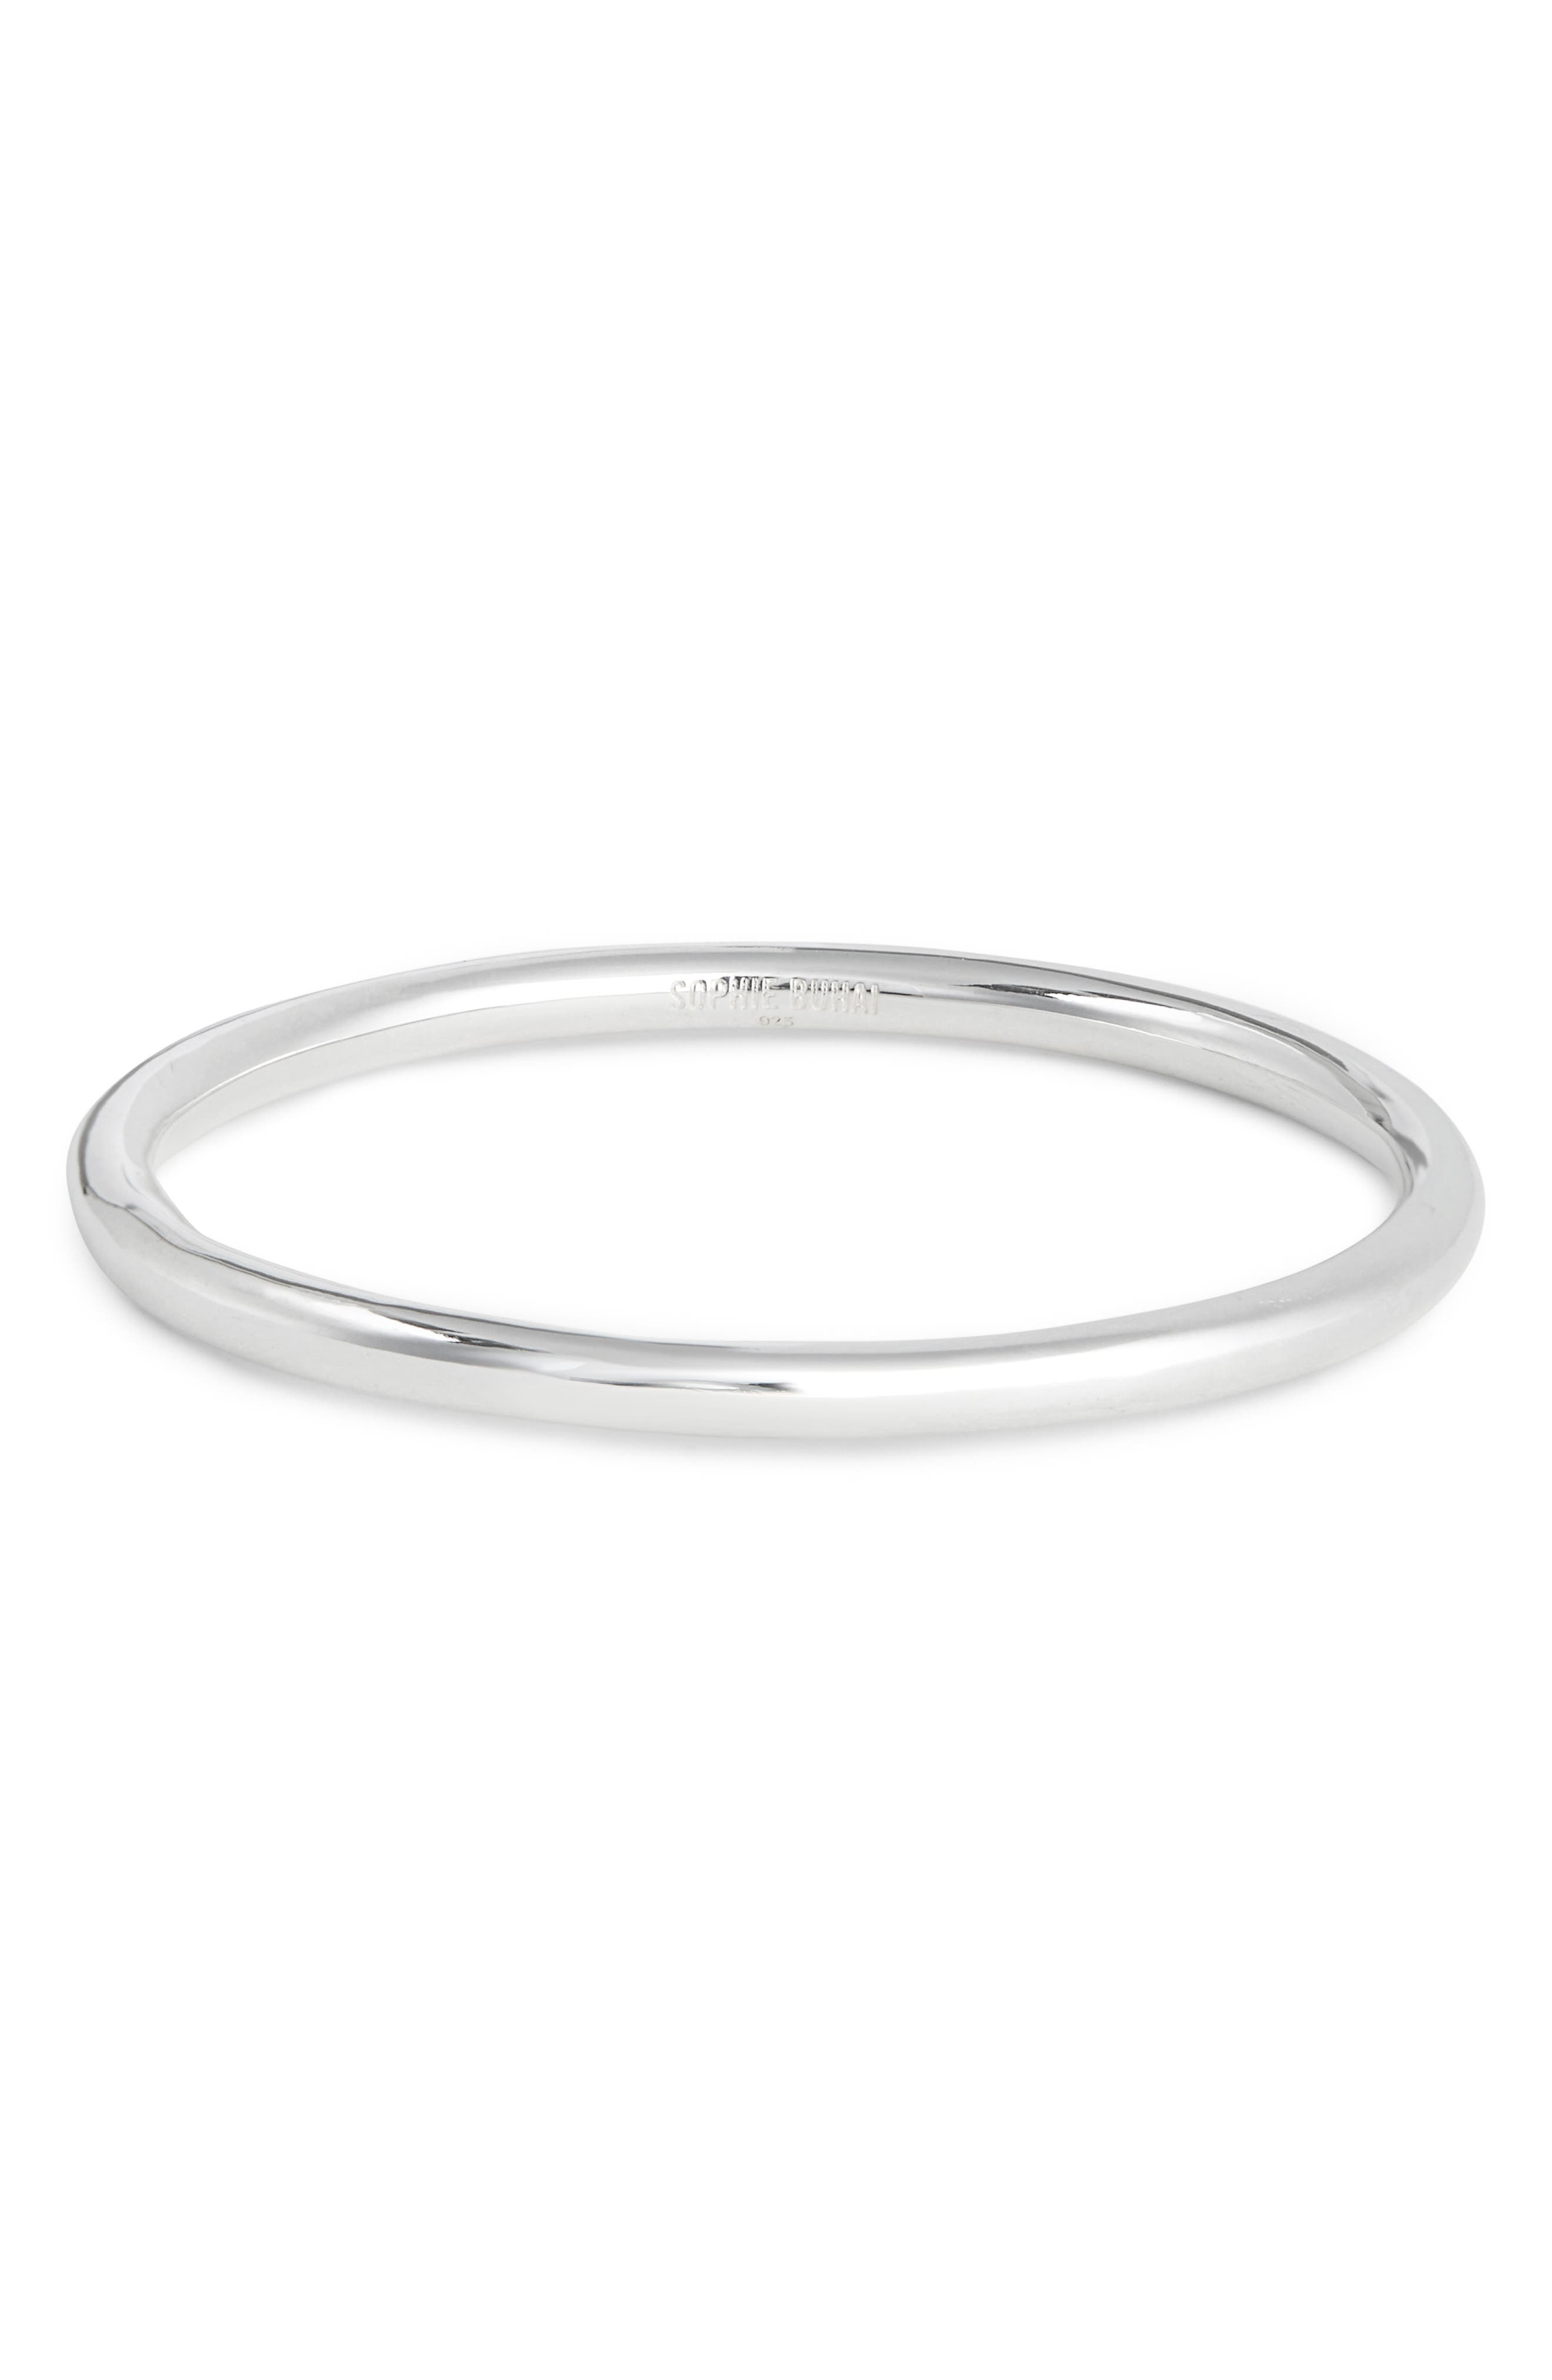 Circle Bangle,                         Main,                         color, SILVER